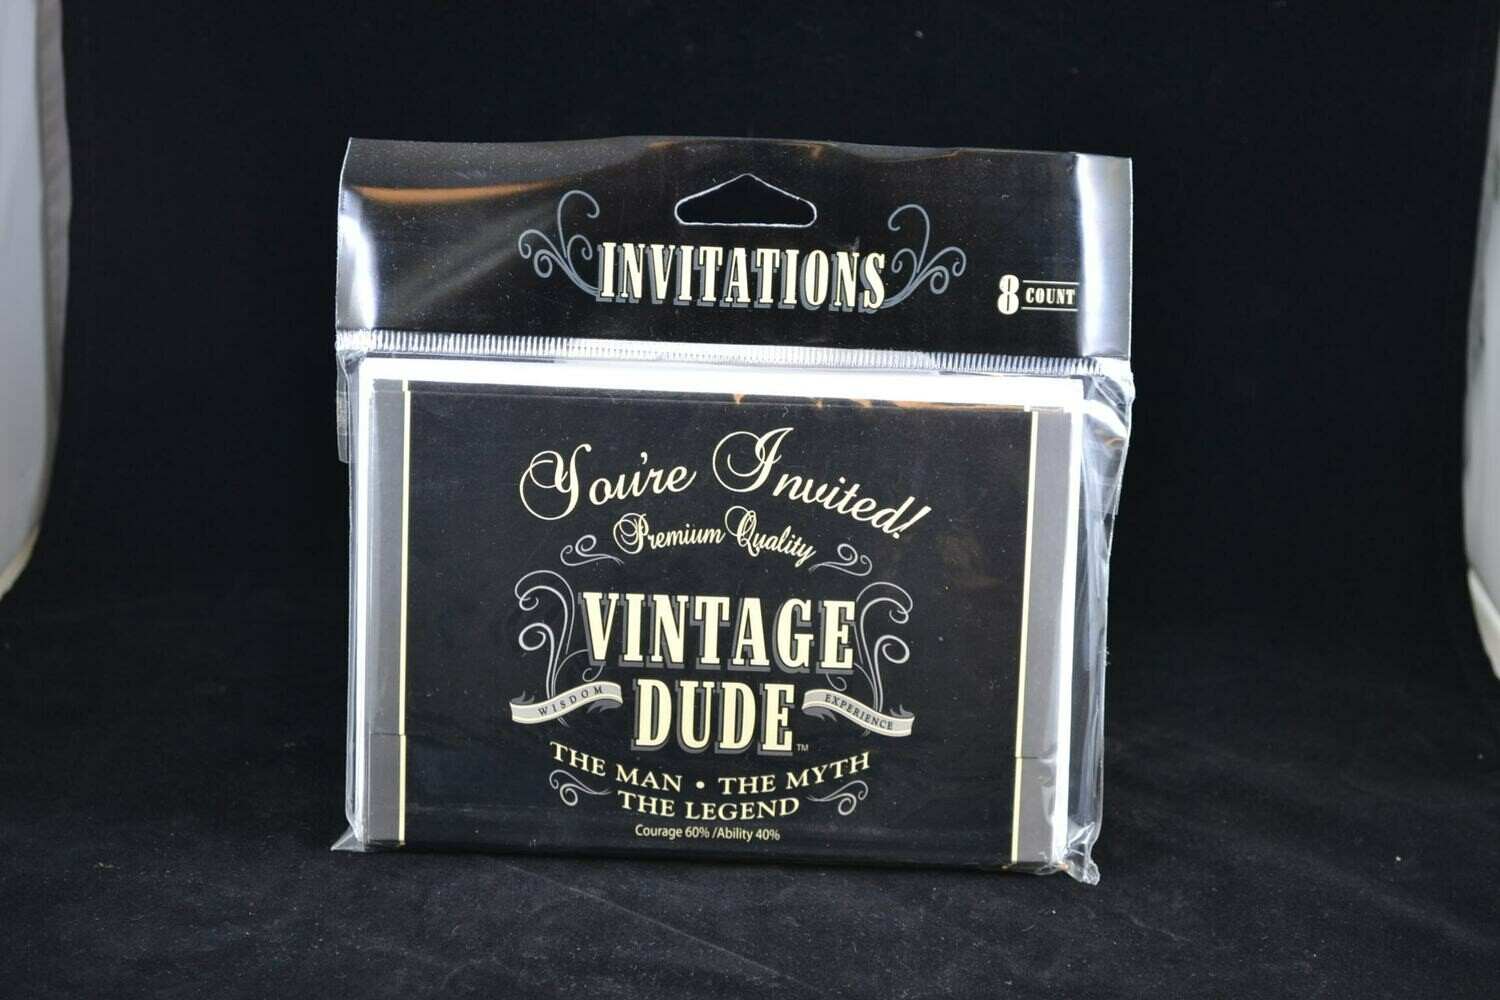 Vintage Dude Invitations 8 Ct